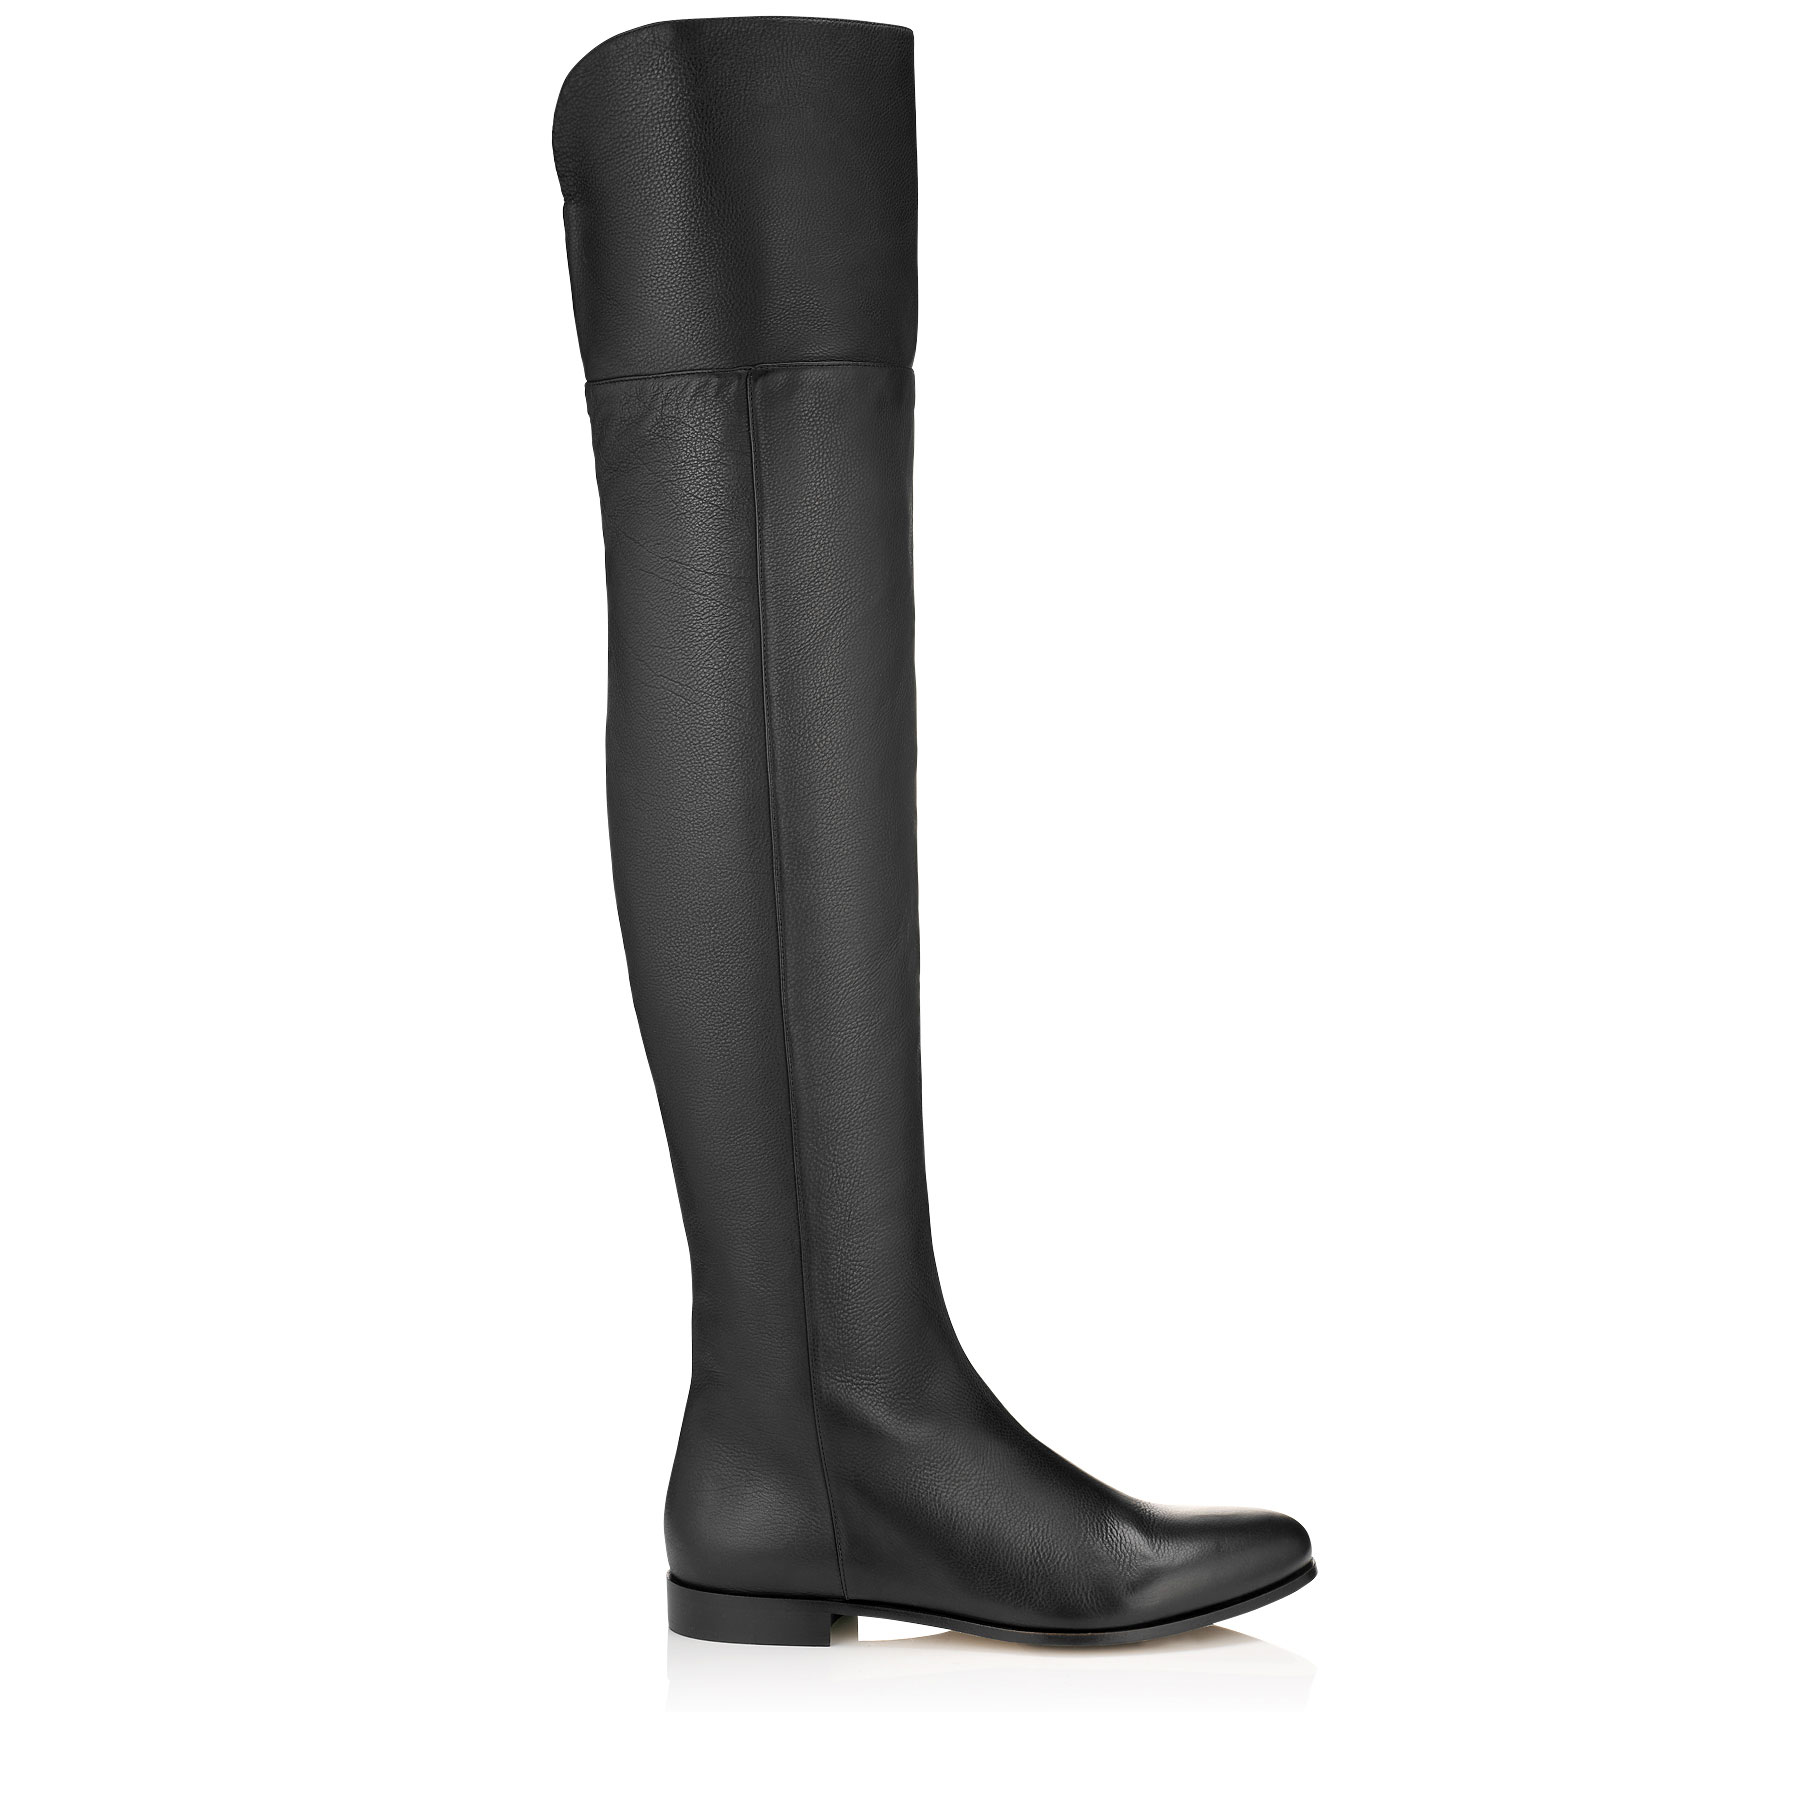 MITTY FLAT Black Grainy Calf Leather Flat Over the Knee Boots